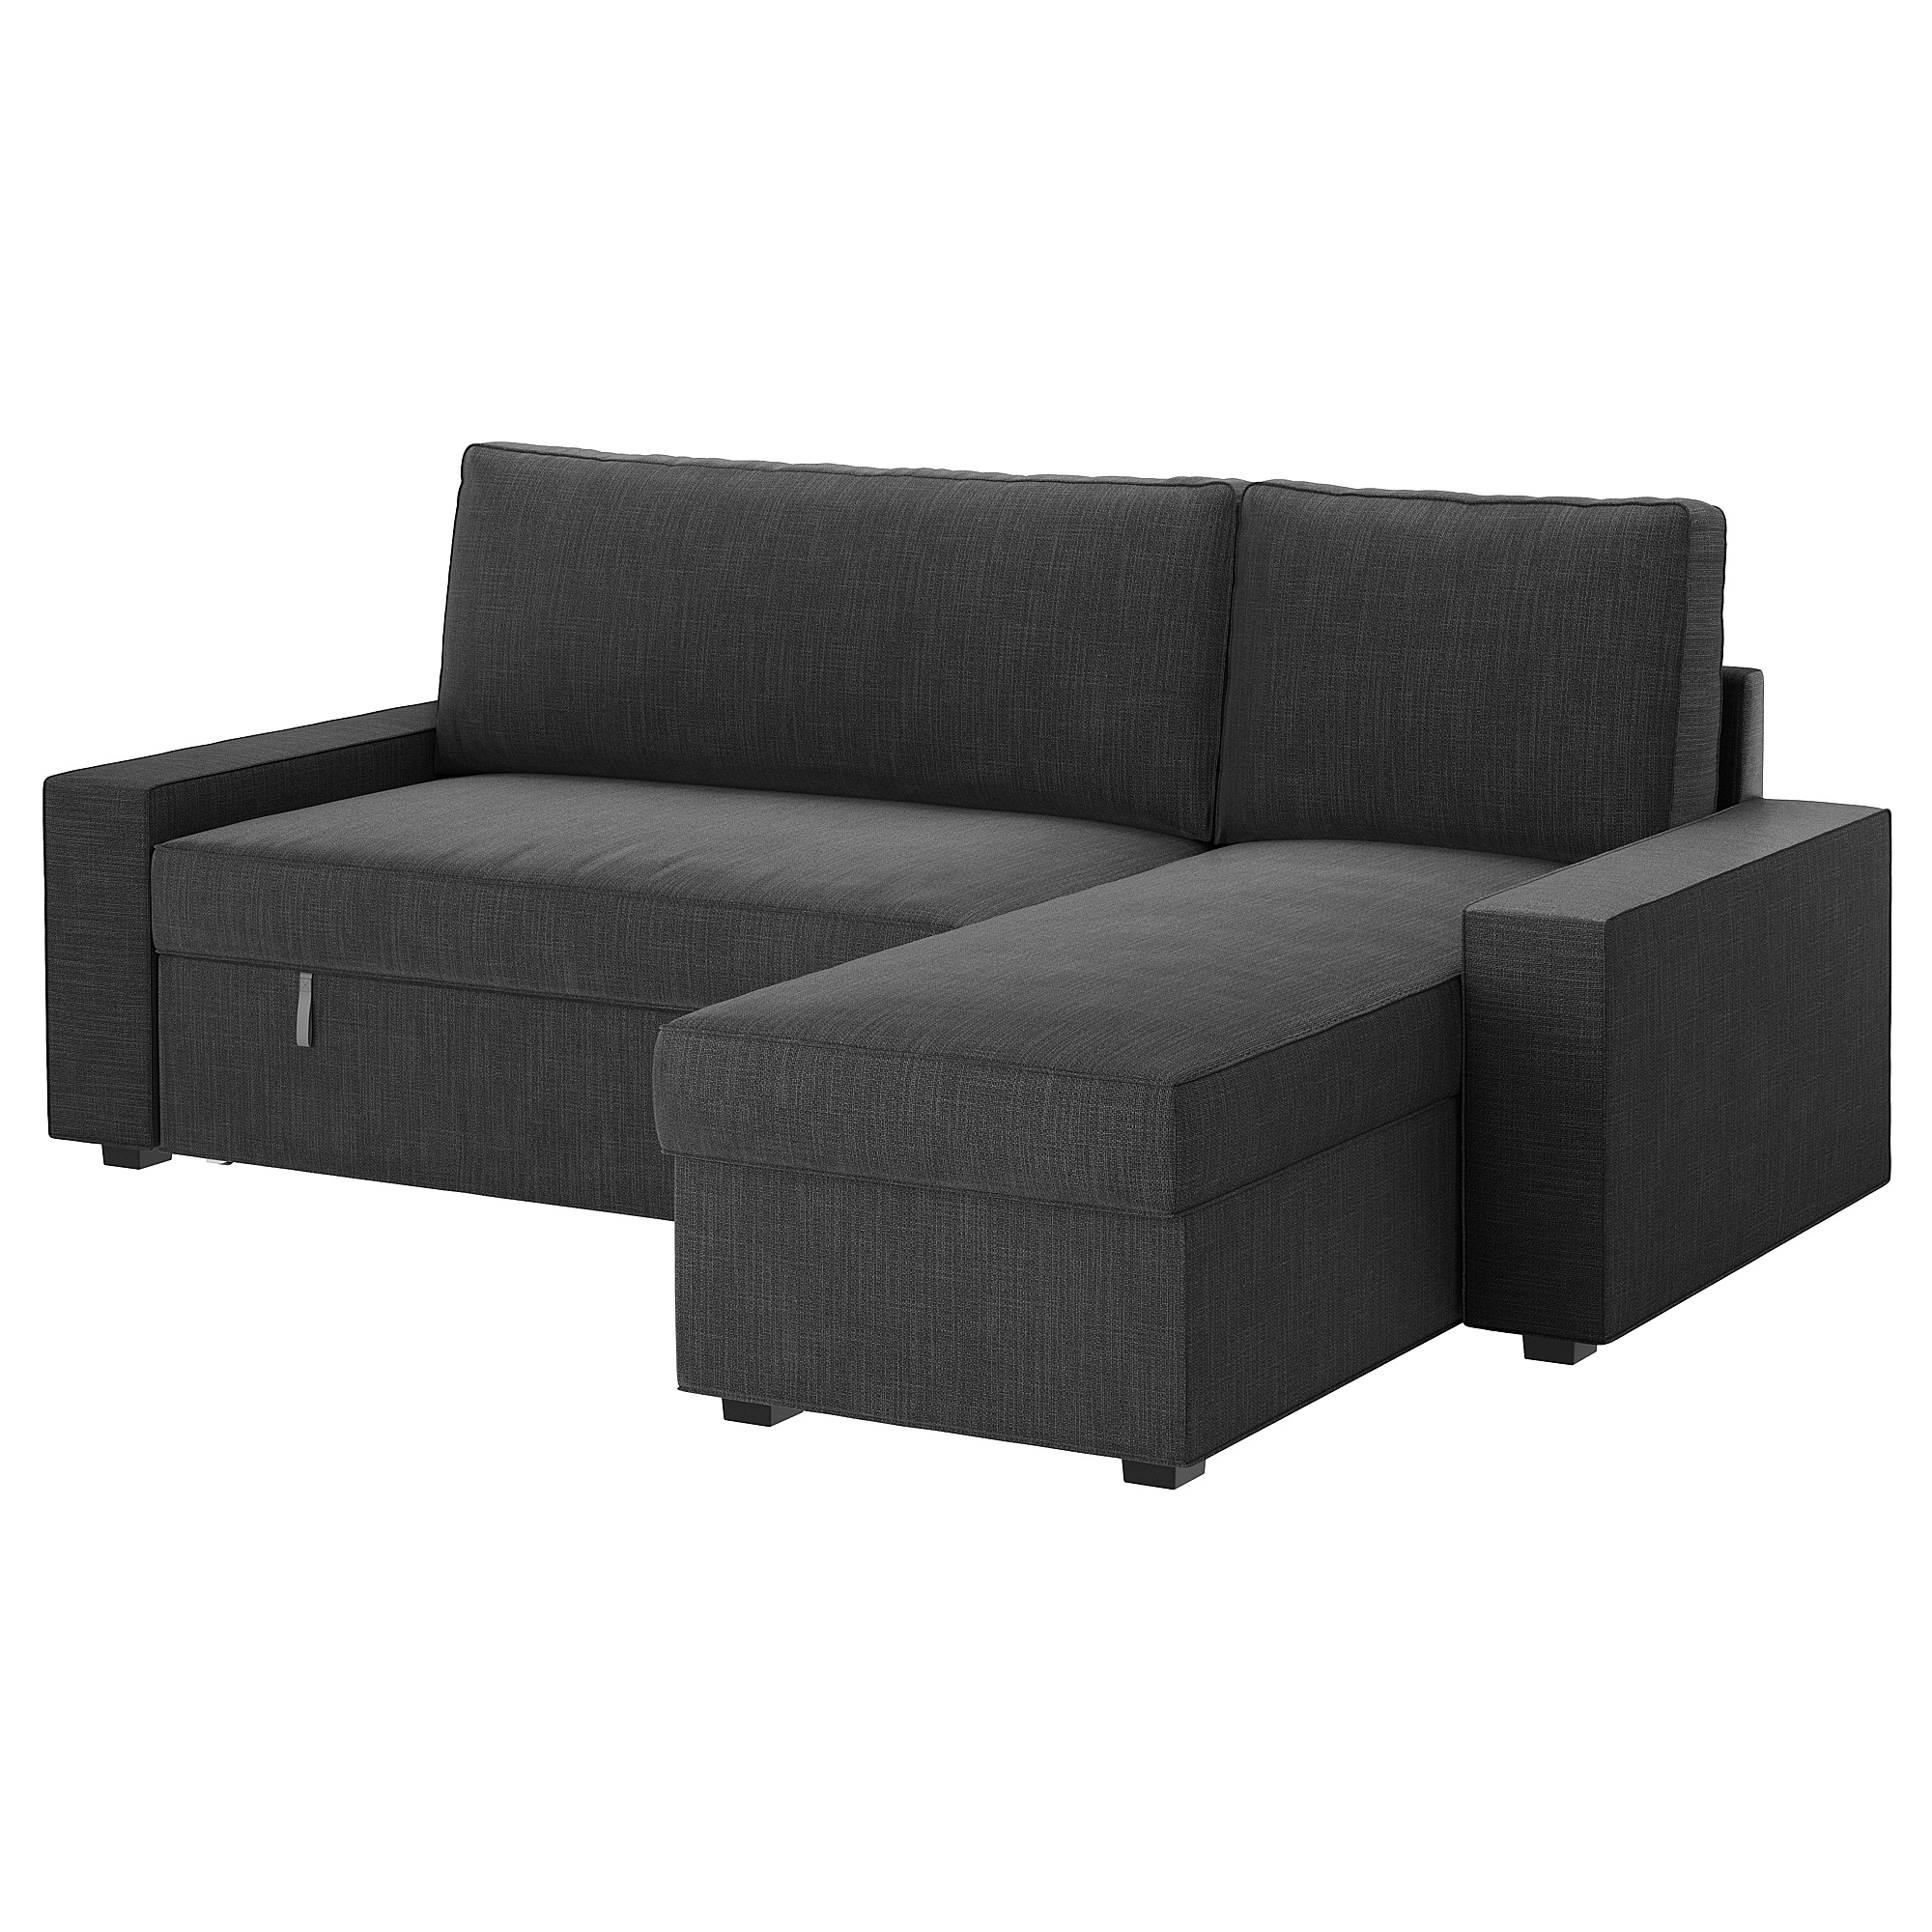 schlafsofa 90 x 180 bestseller shop f r m bel und einrichtungen. Black Bedroom Furniture Sets. Home Design Ideas